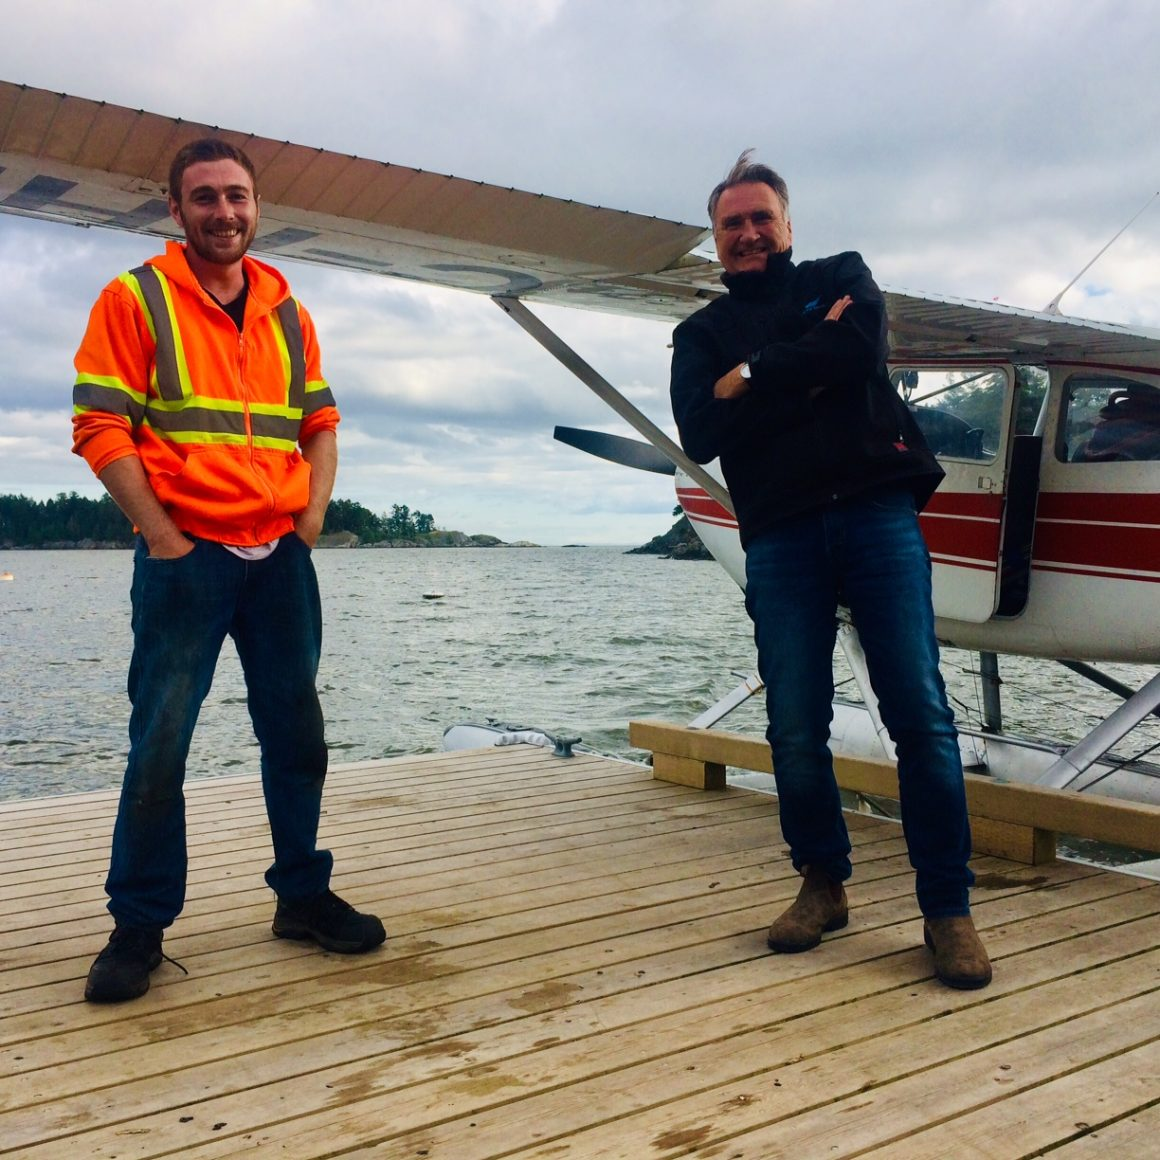 Kaman flying with Randy to Pasley Island